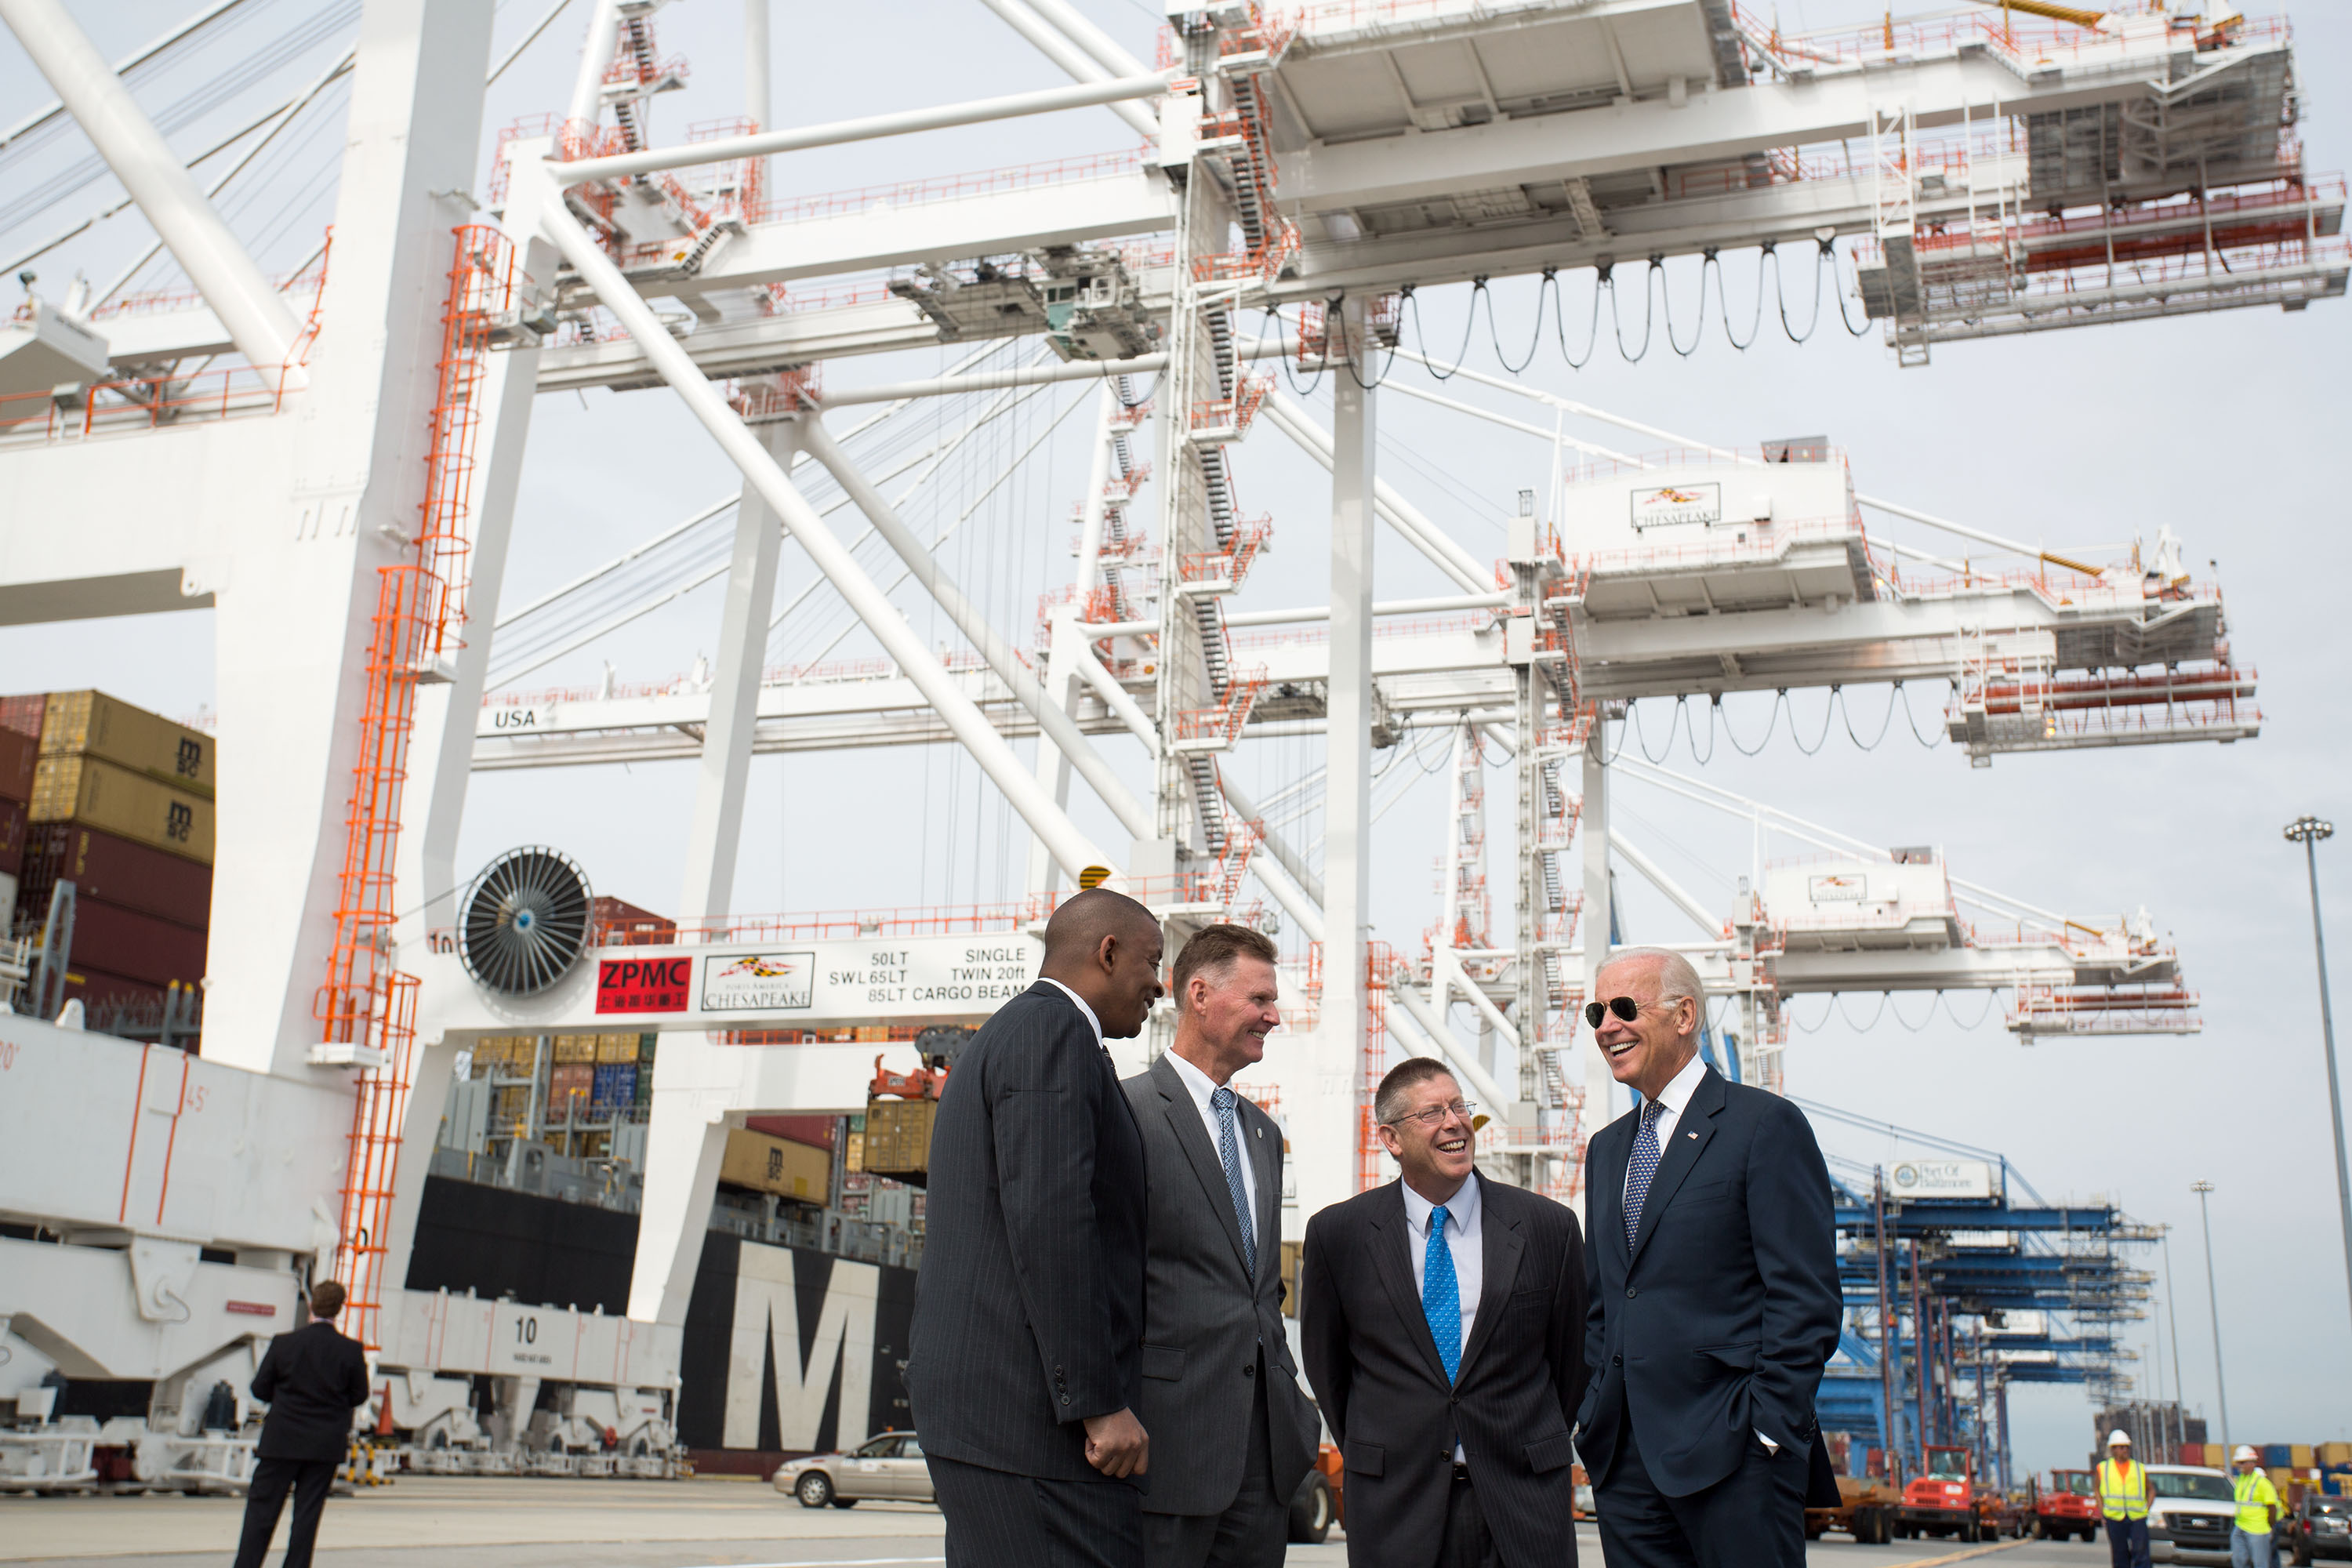 Vice President Biden at the Port of Baltimore (Sept. 9, 2013)